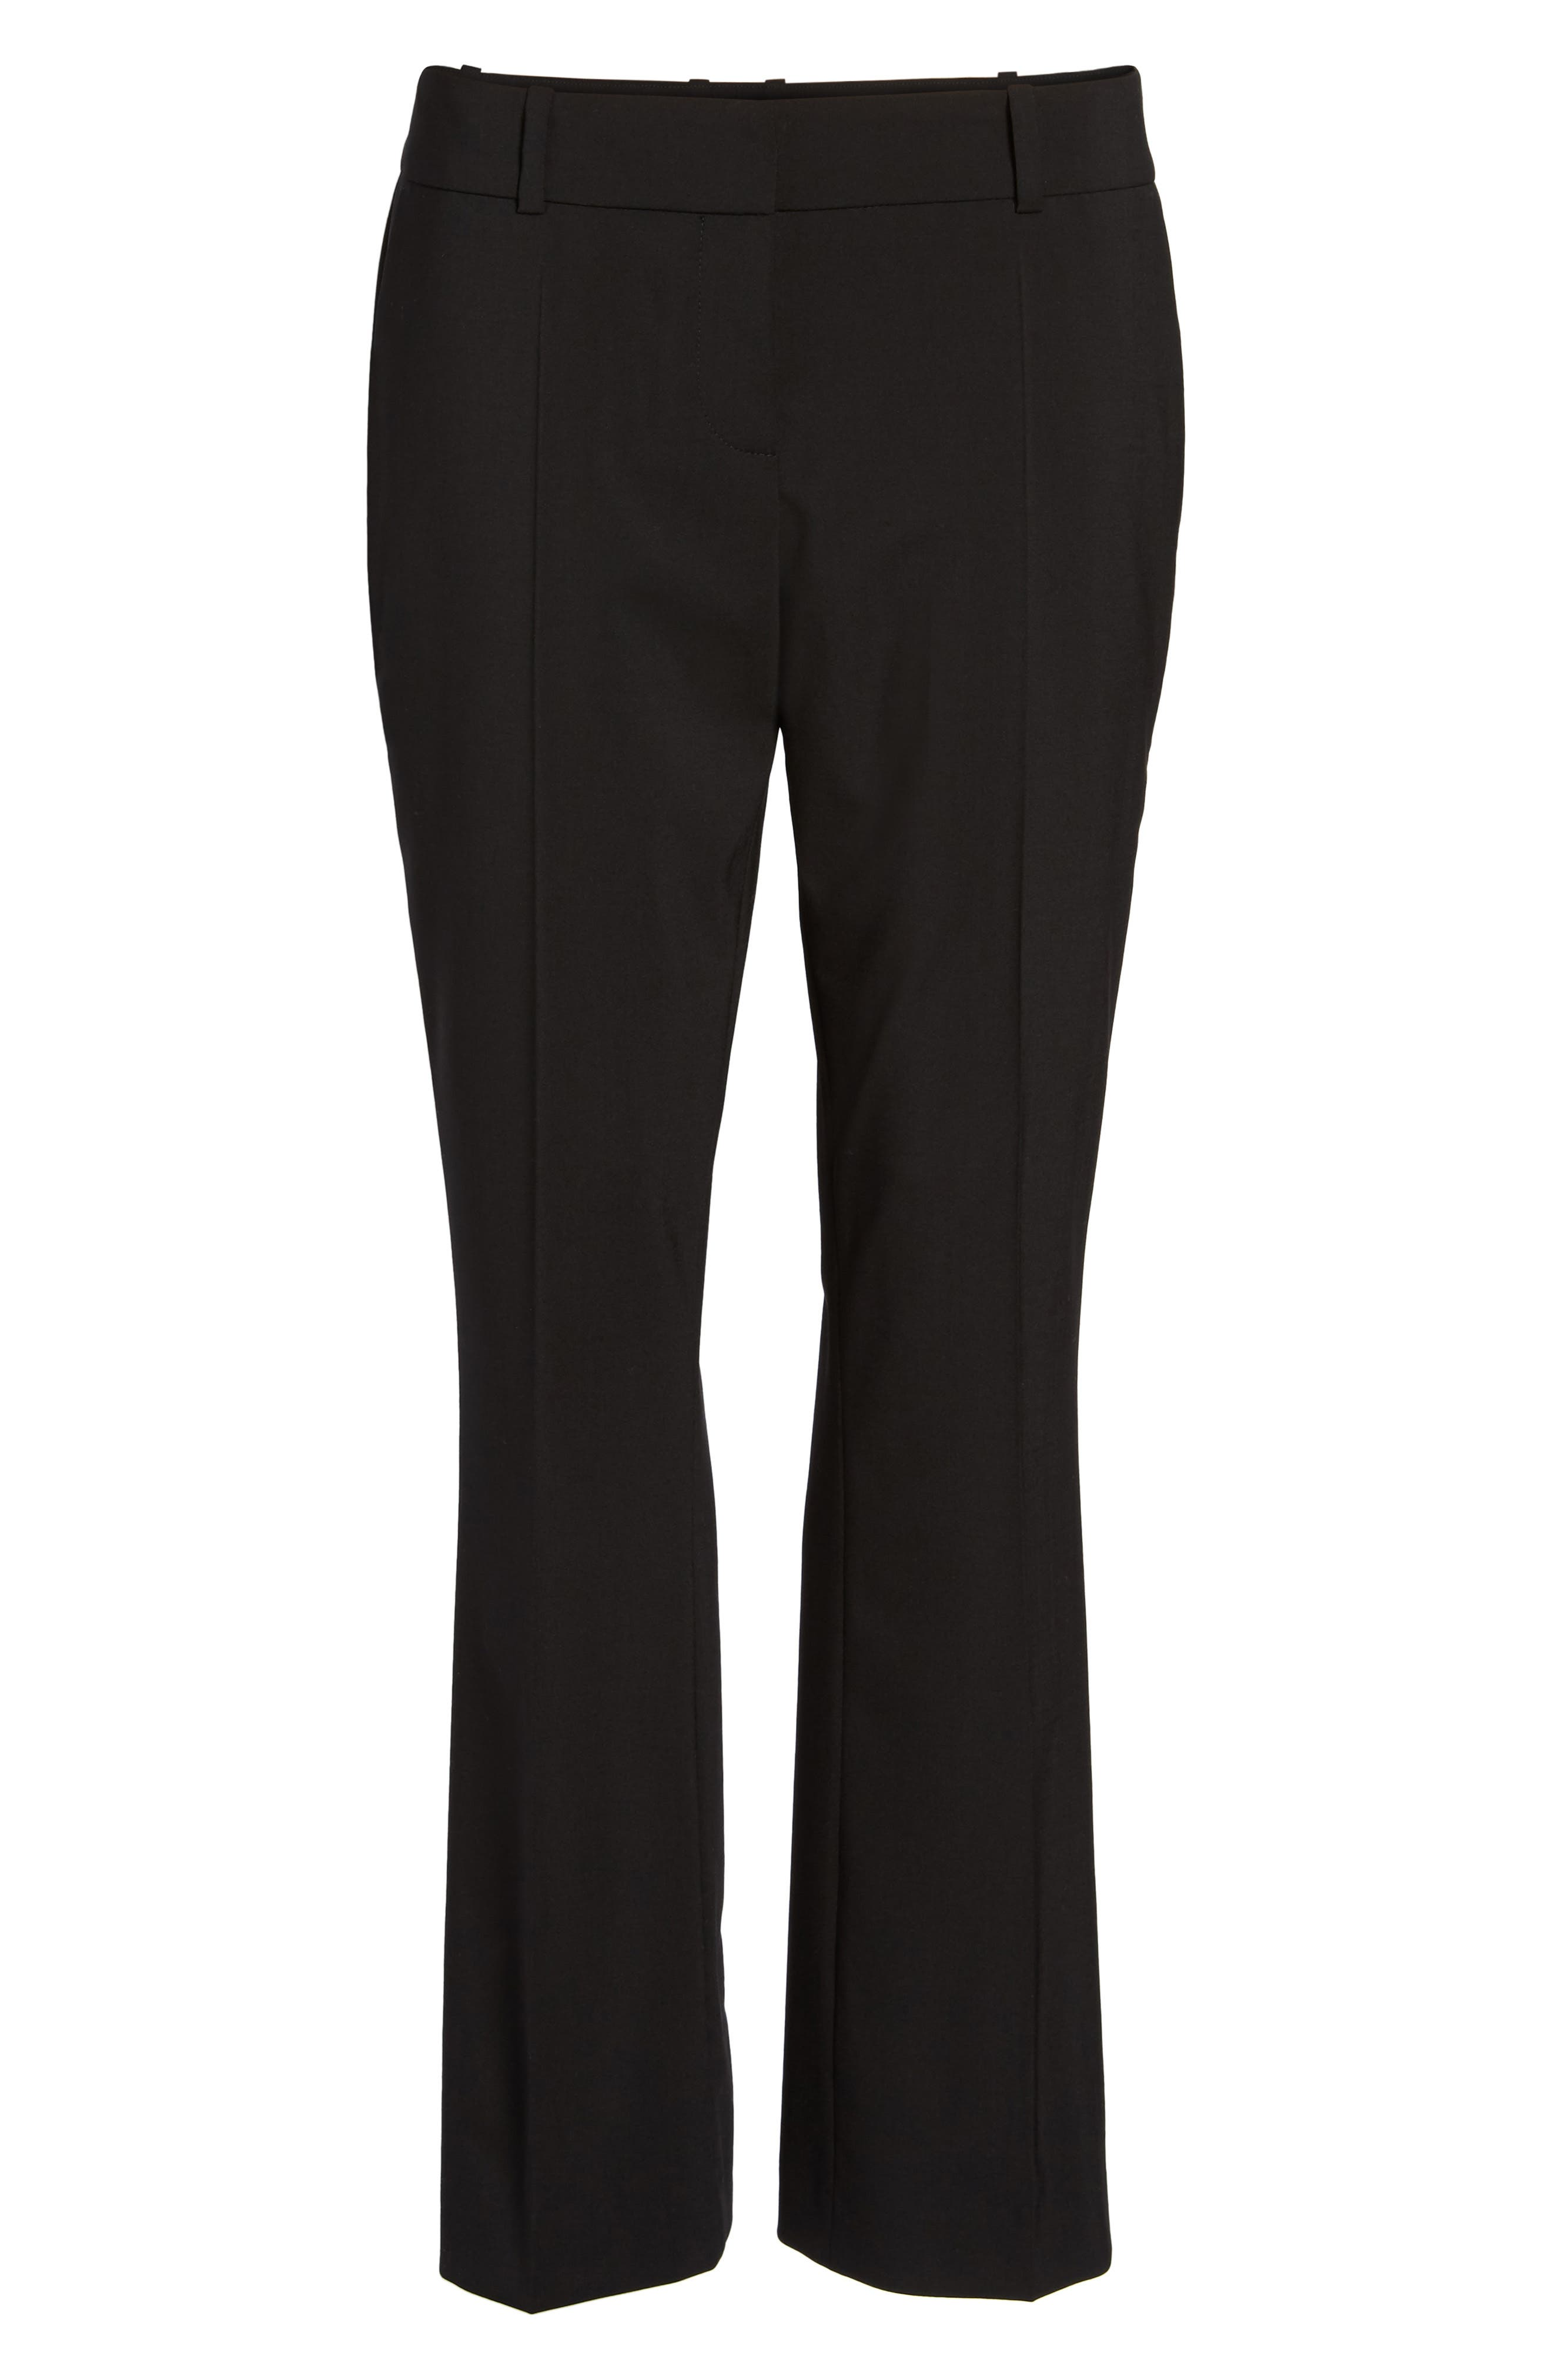 Talenara Tropical Stretch Wool Ankle Trousers,                             Alternate thumbnail 8, color,                             Black